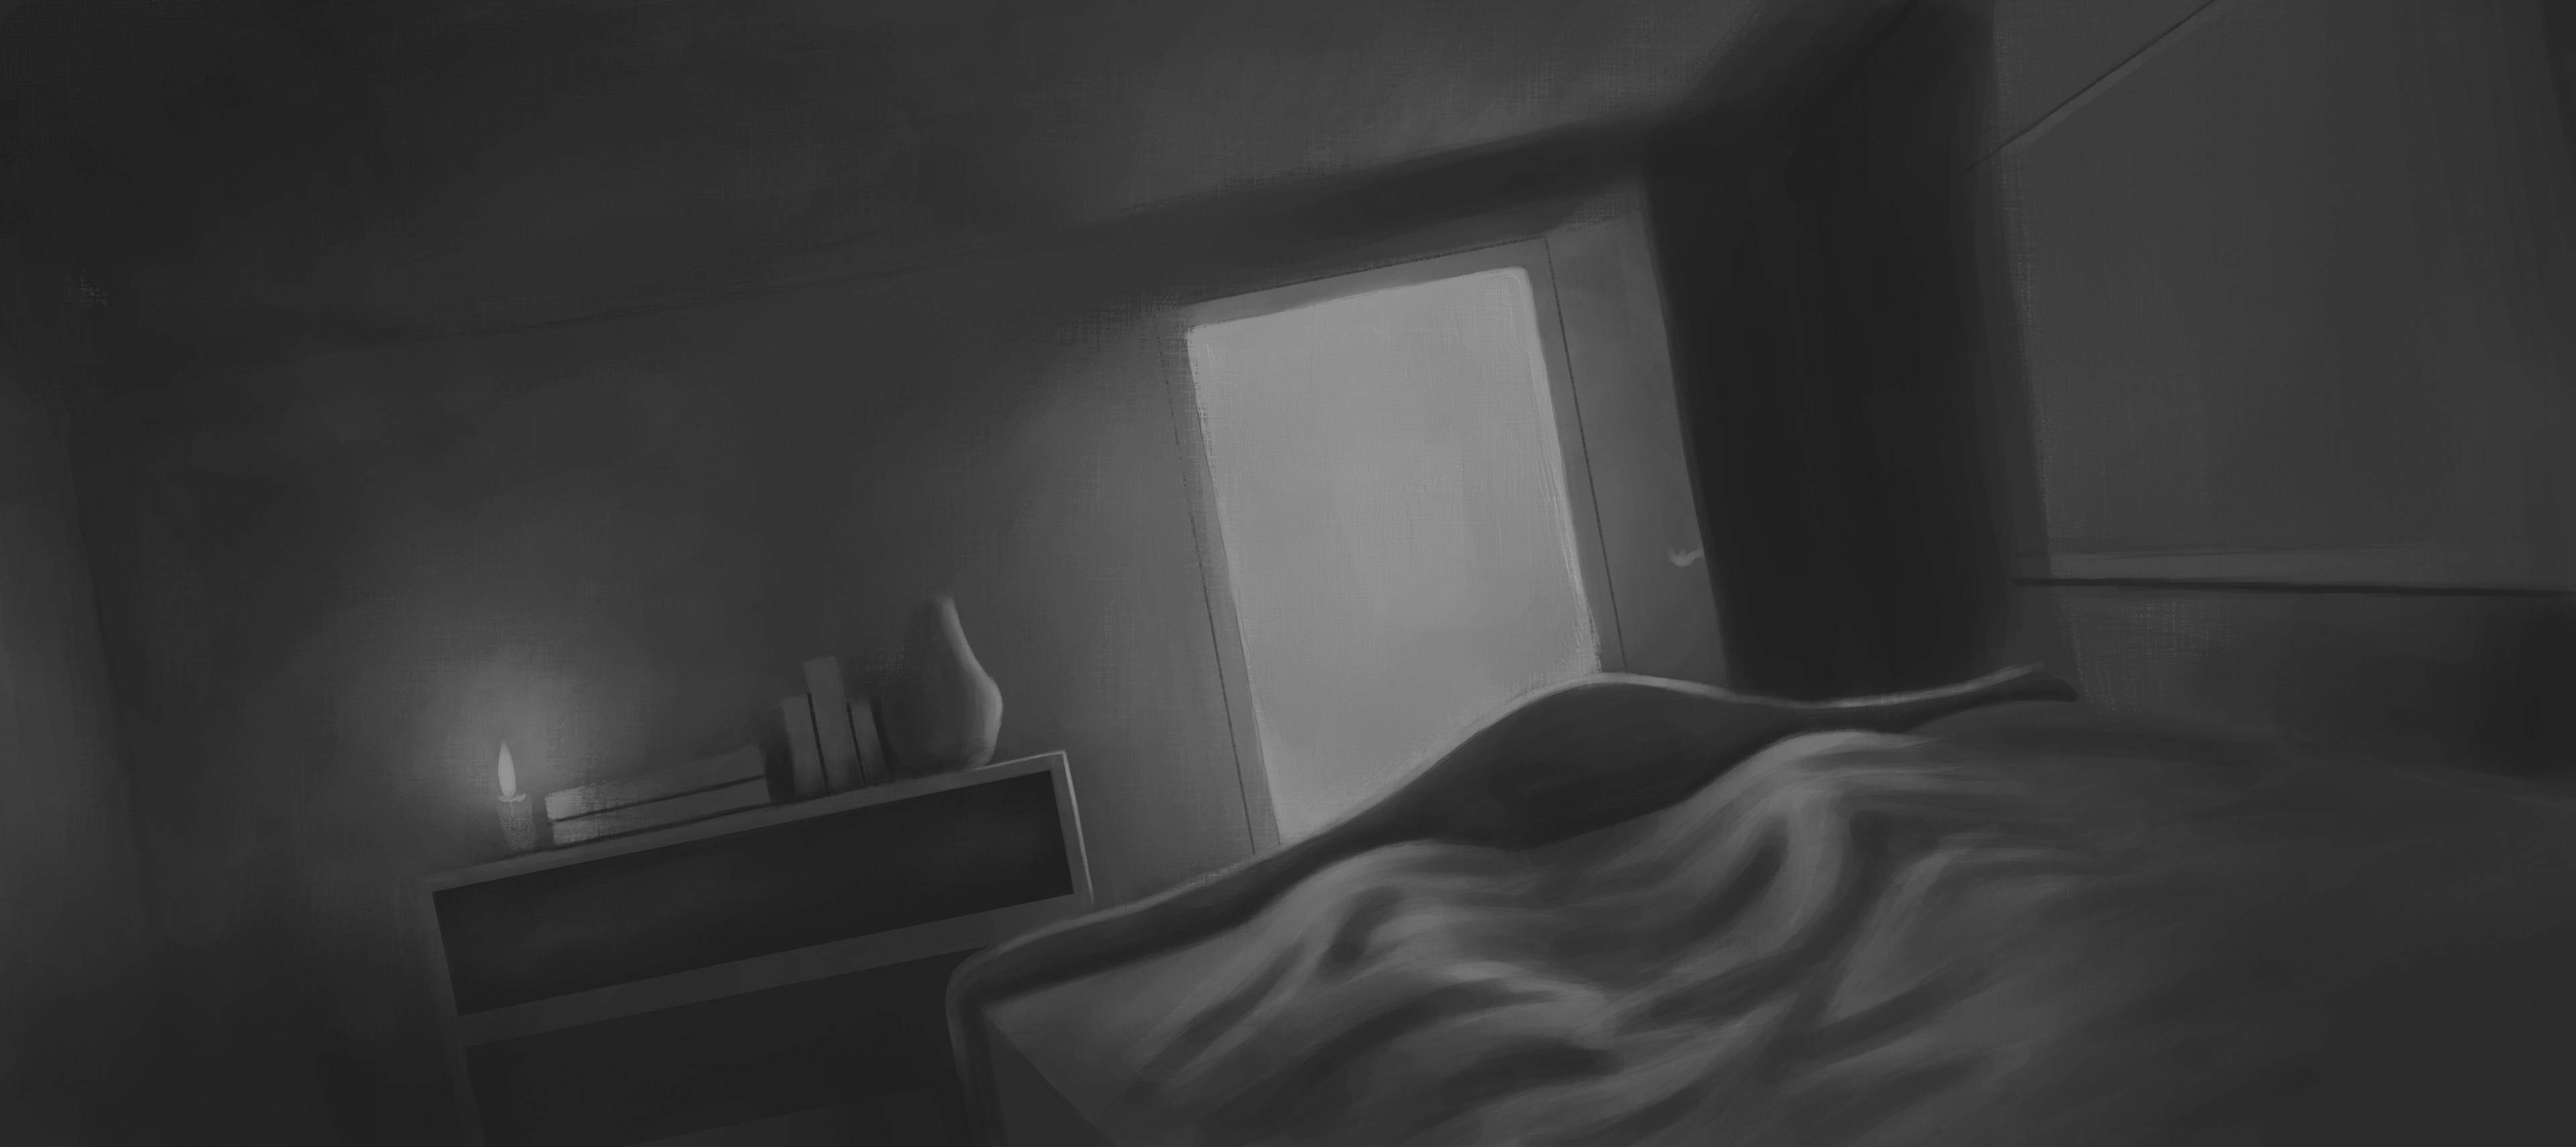 First lighting sketch